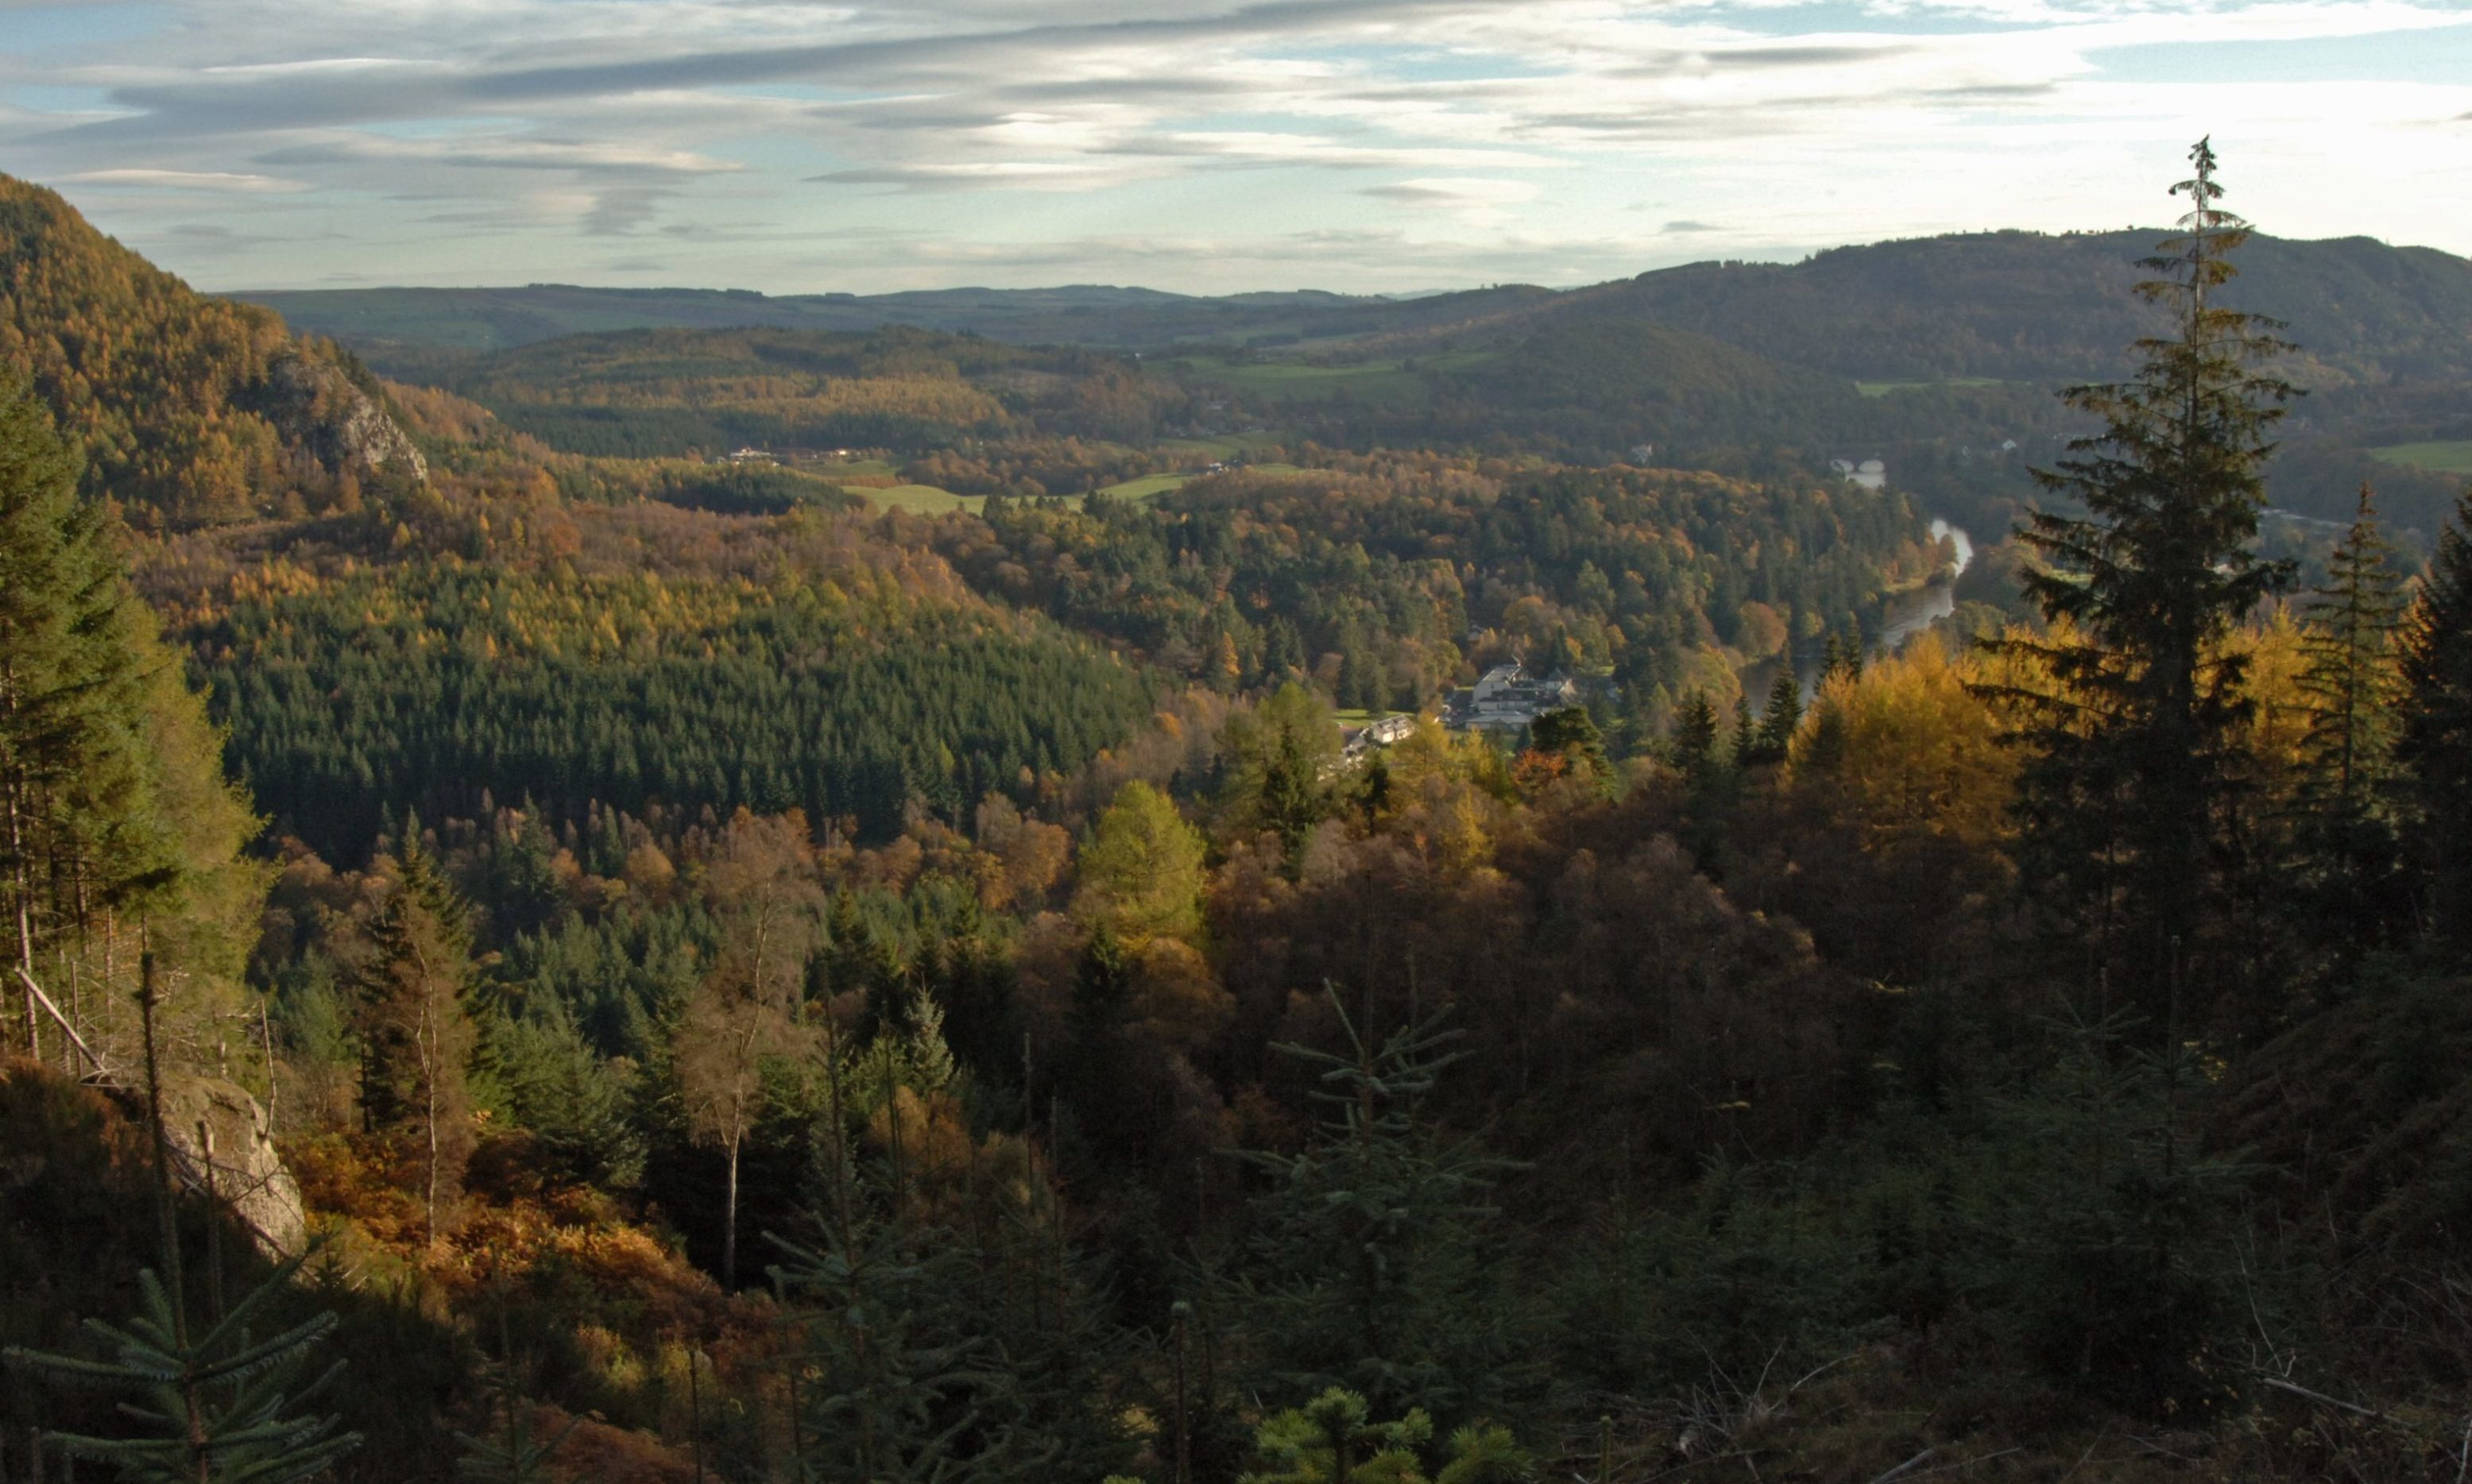 View from Craigviean Forest over Dunkeld and the river Tay.